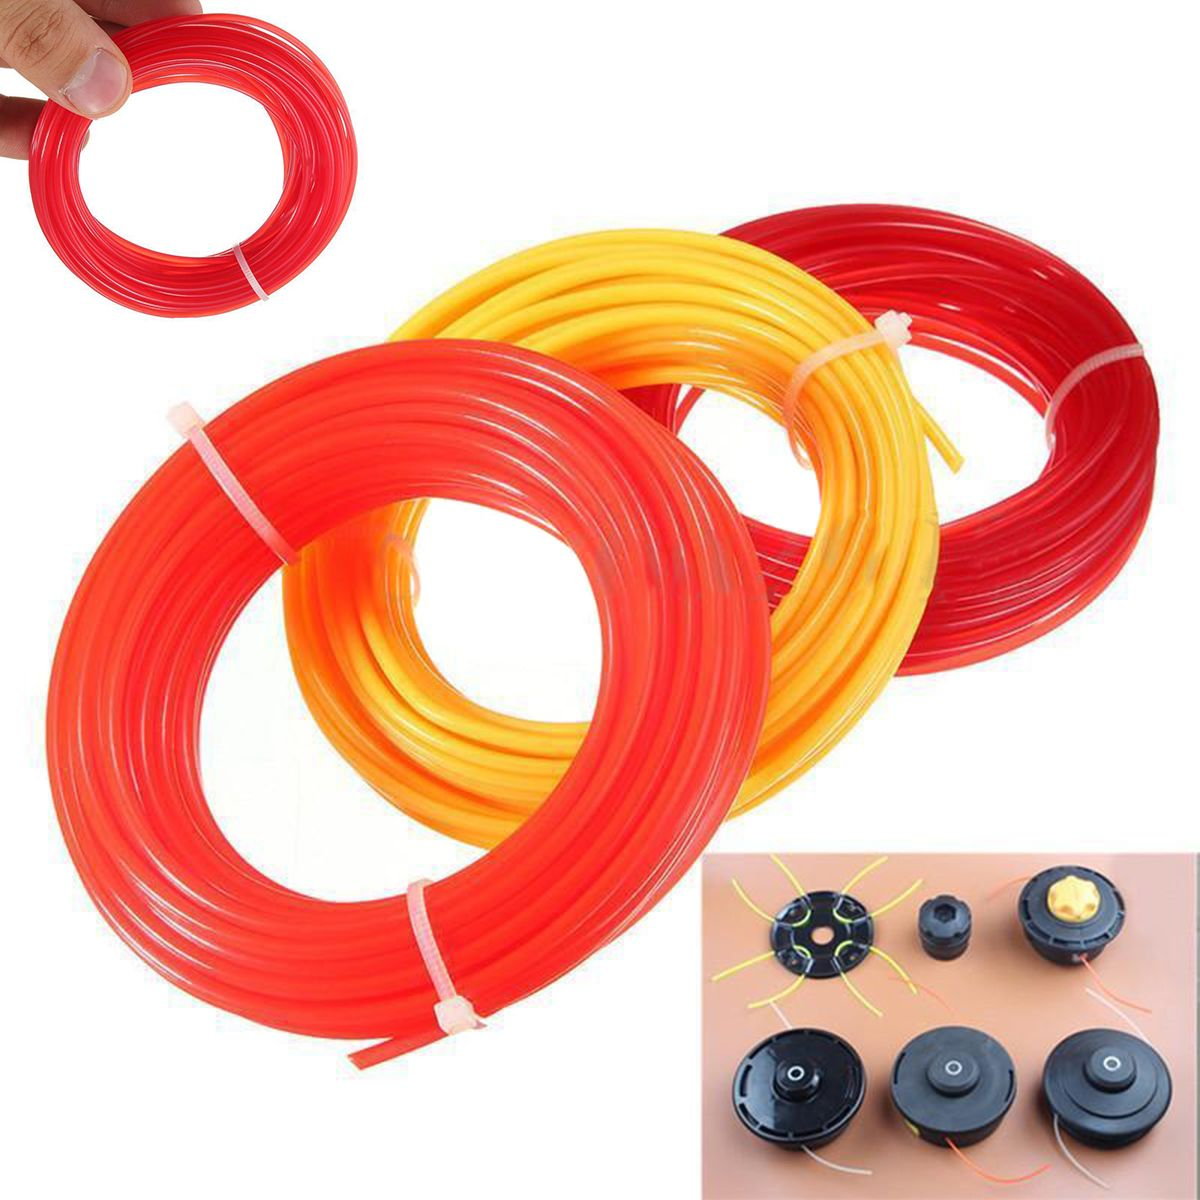 10m x 2mm strimmer line brushcutter grass trimmers nylon cord wire round tg FBB